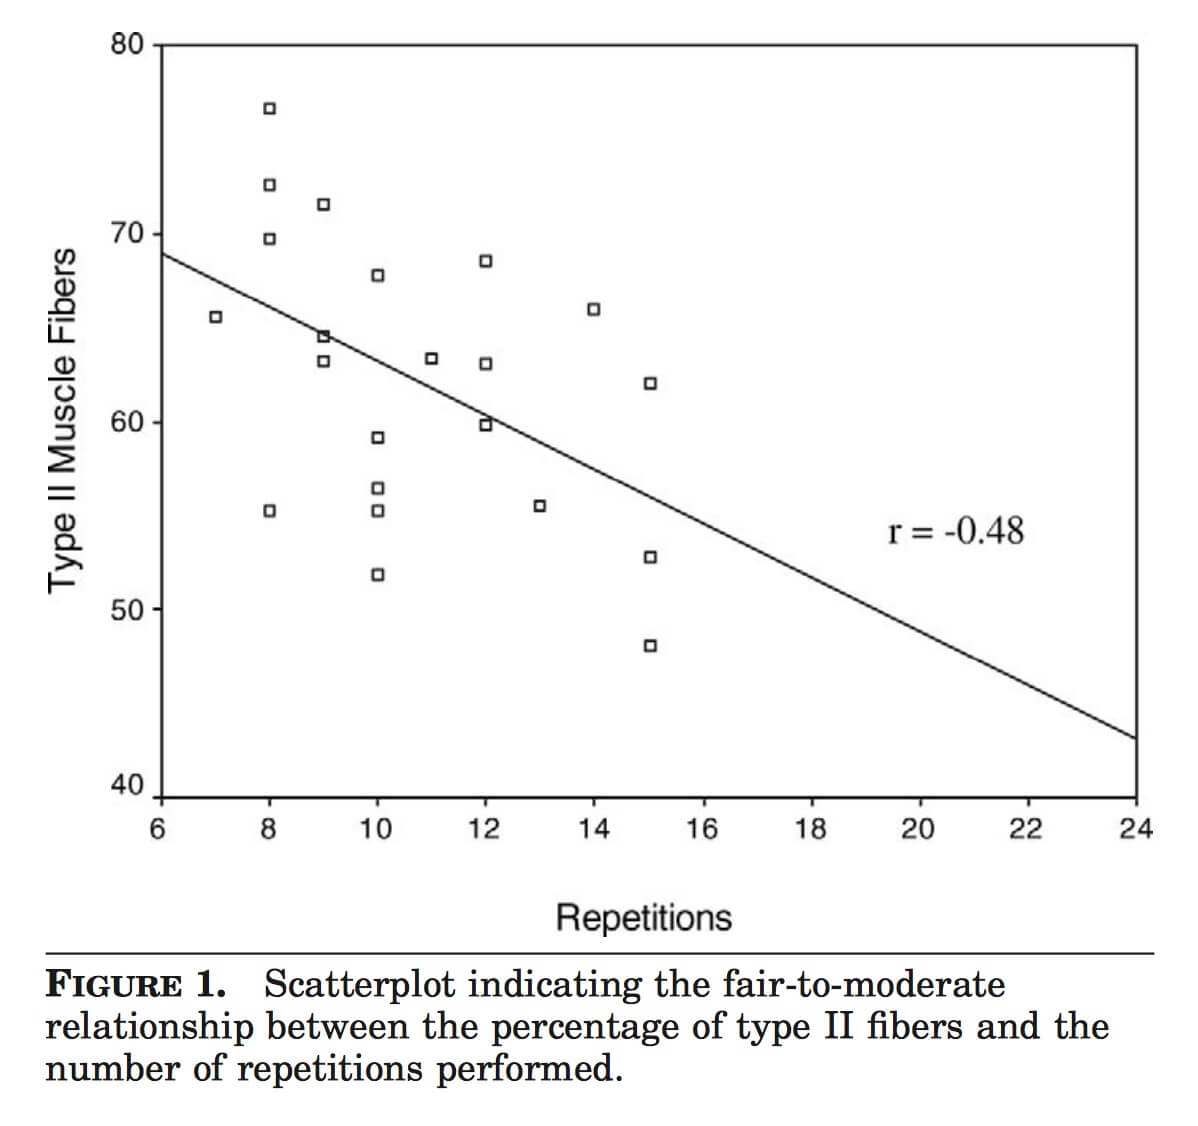 From Douris et. Al: http://journals.lww.com/nsca-jscr/Abstract/2006/08000/THE_RELATIONSHIP_BETWEEN_MAXIMAL_REPETITION.36.aspx